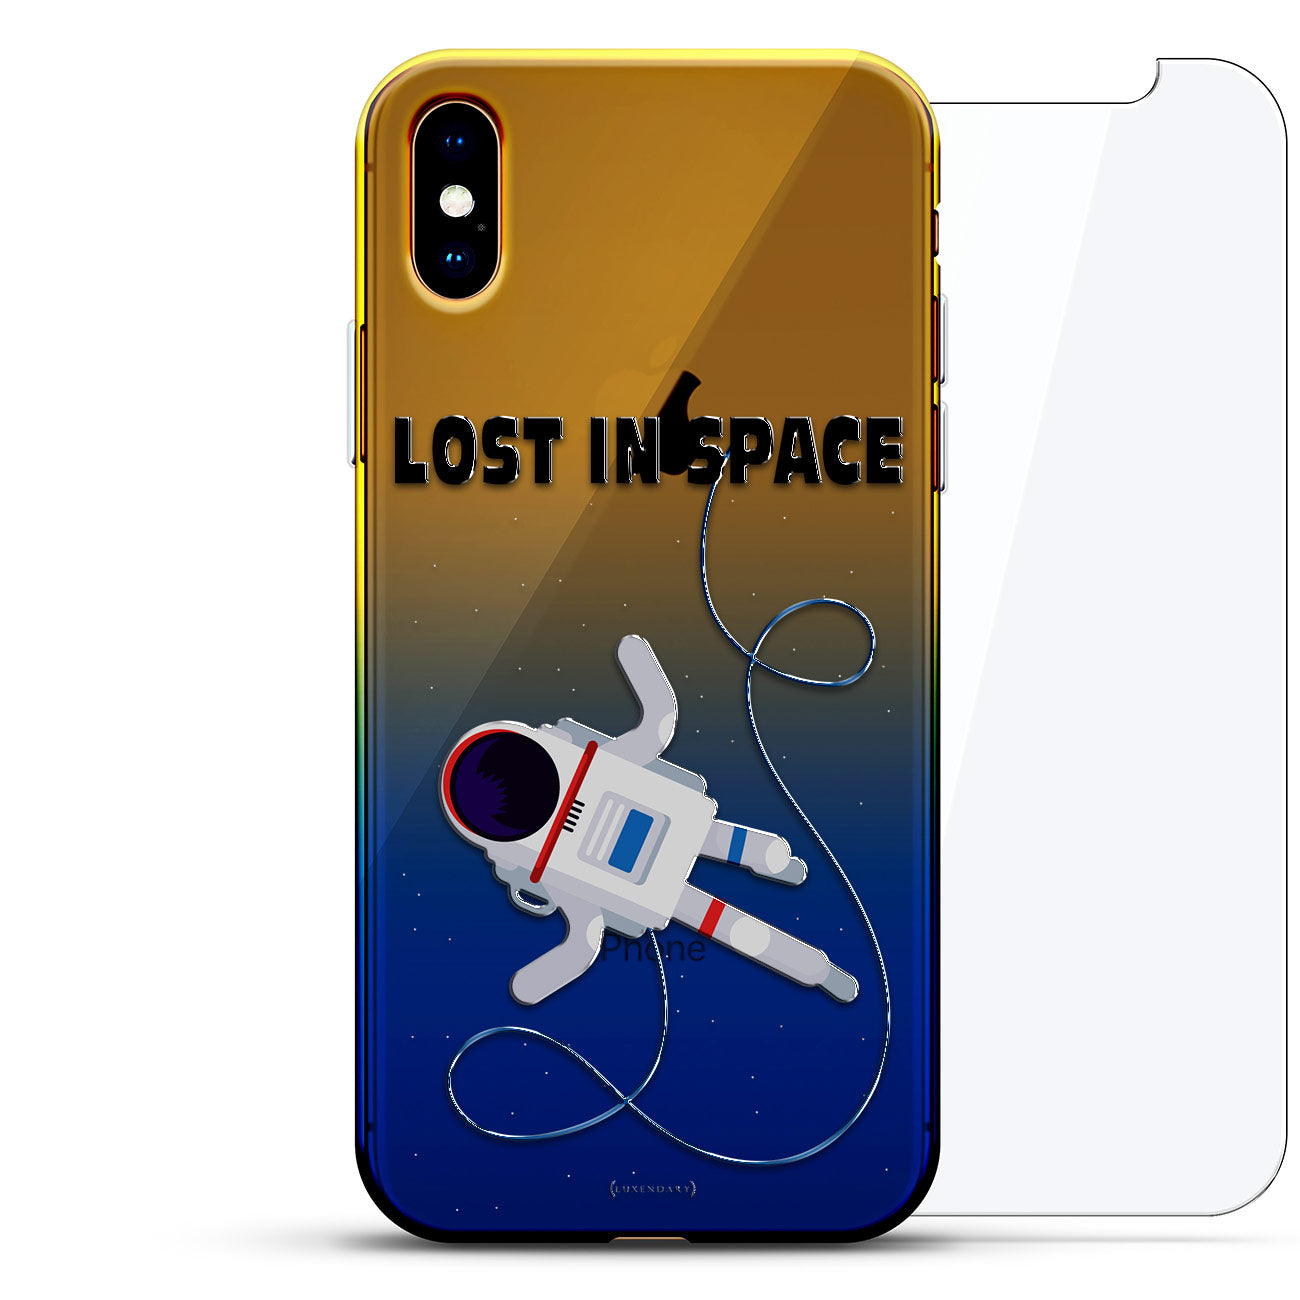 SPACE: Astronaut Lost in Space